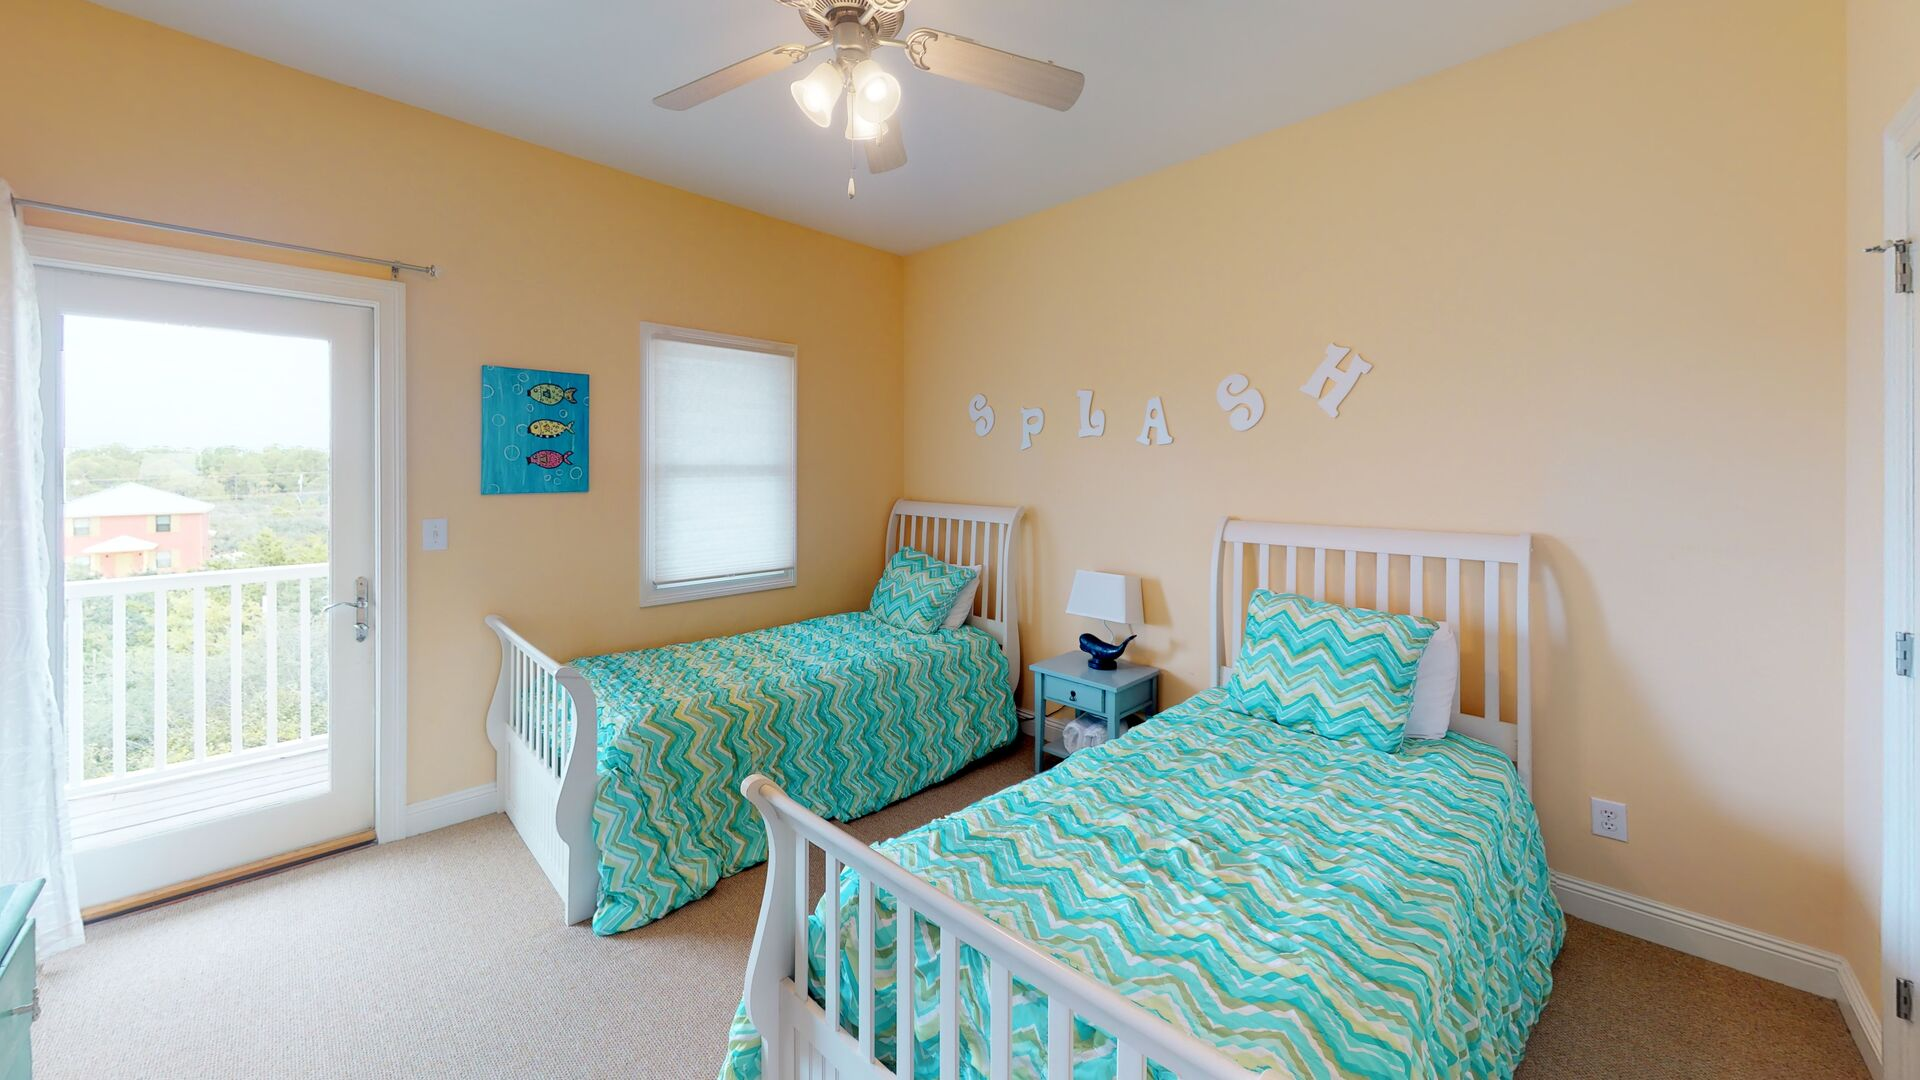 Upstairs Bedroom Features Two Twin Beds.